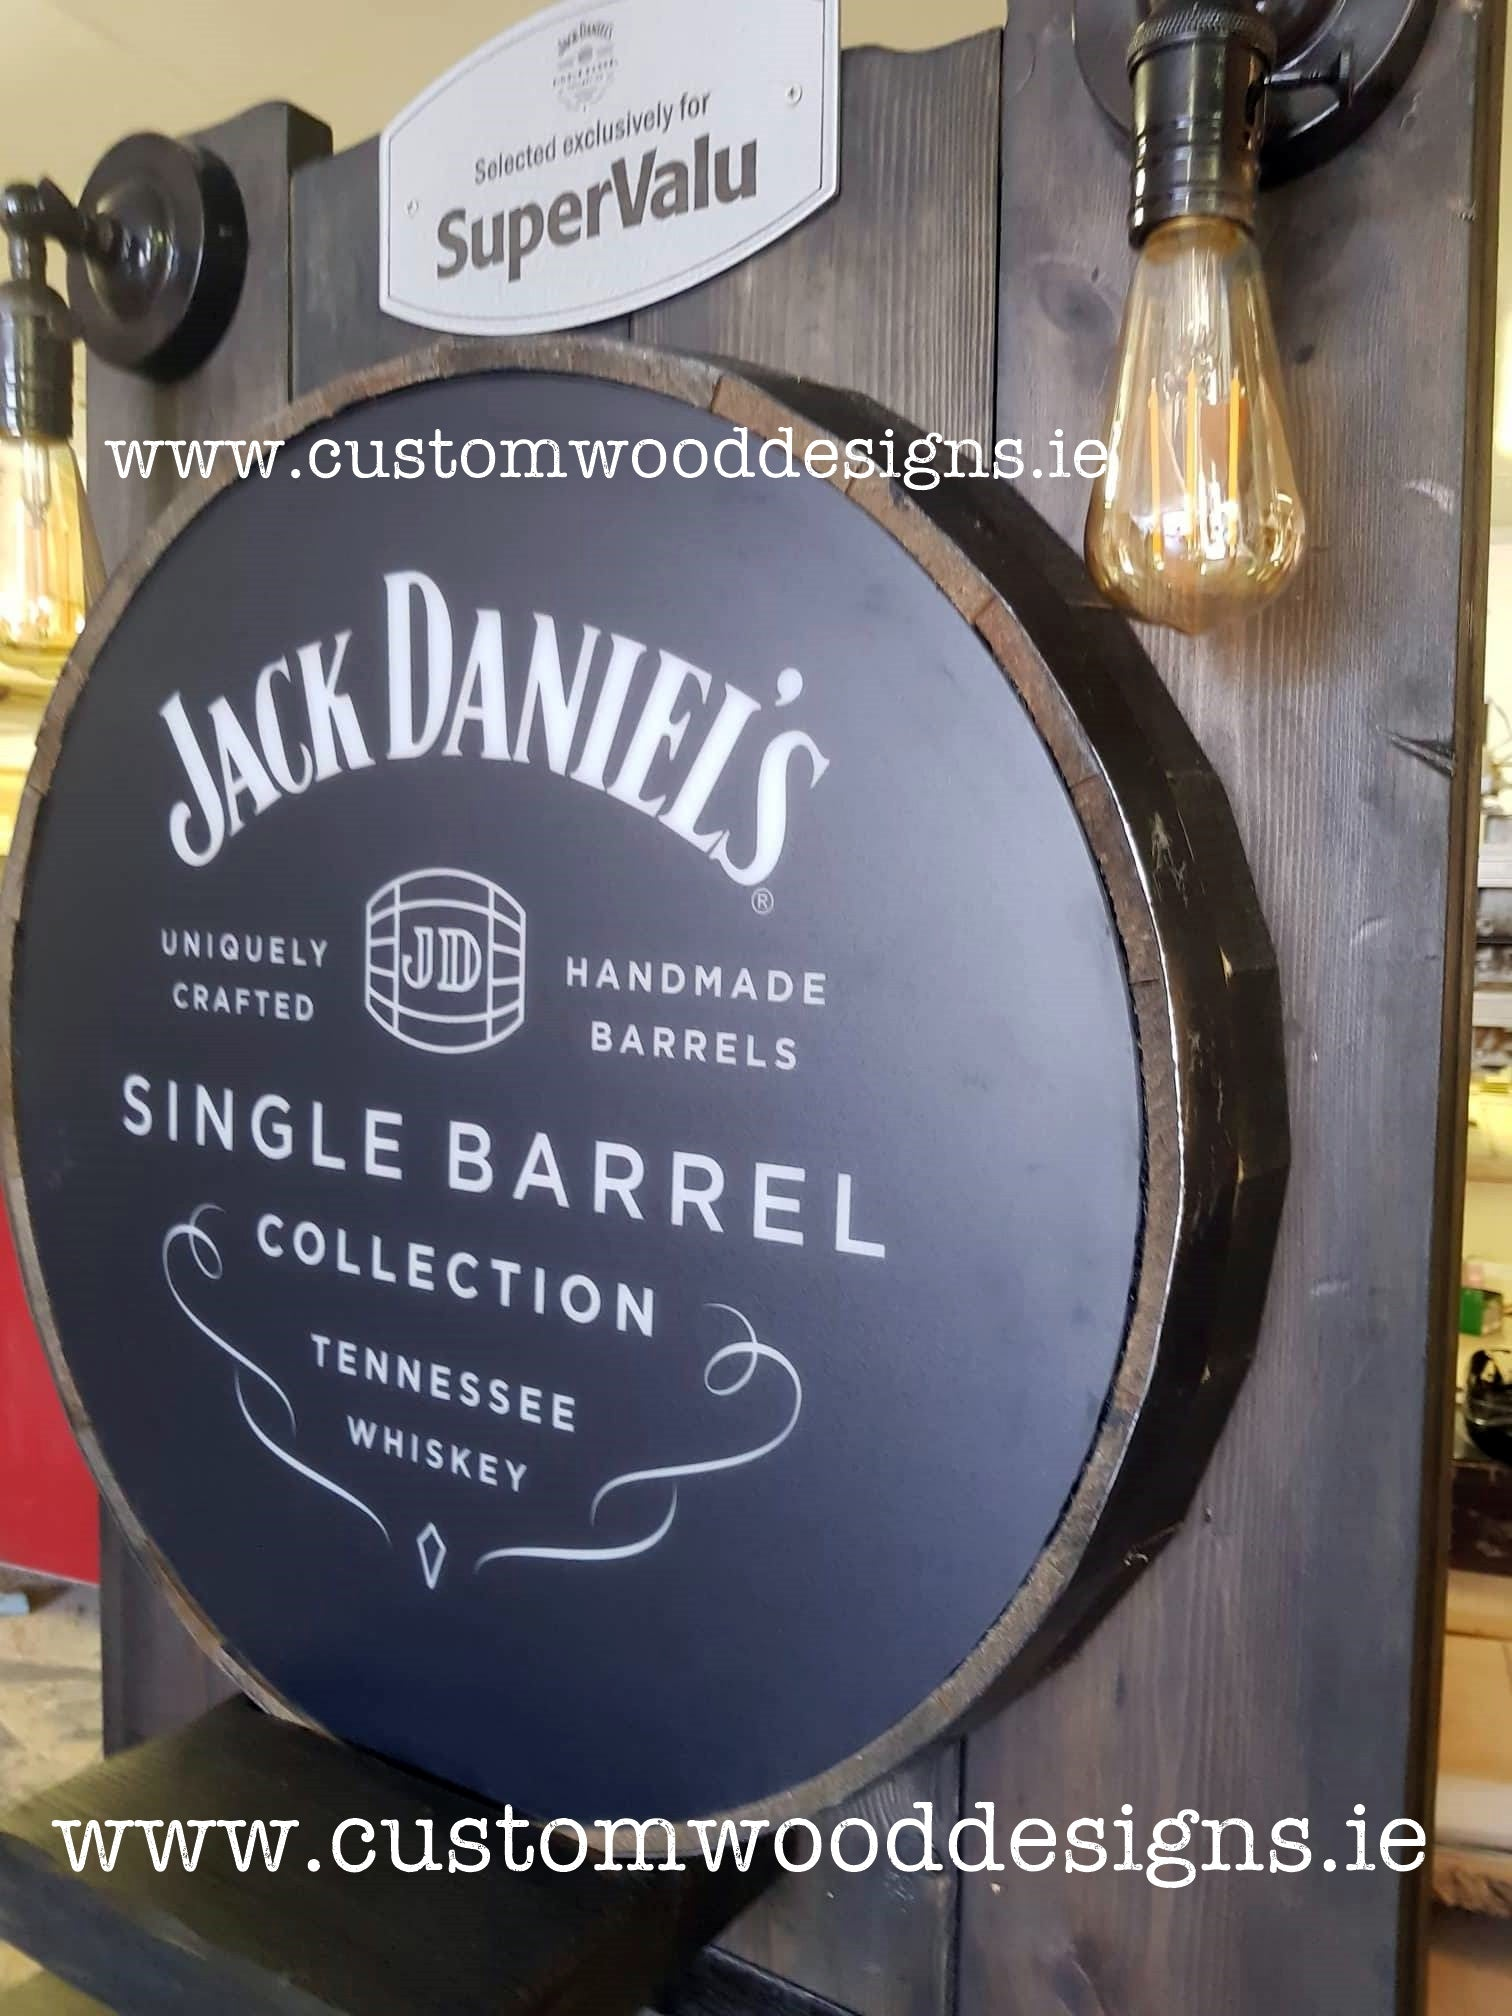 rustic with lights jack daniels point of sale retail display point of sale free standing europenan manufacturer custom wood designs Ireland Irish designs manufacture